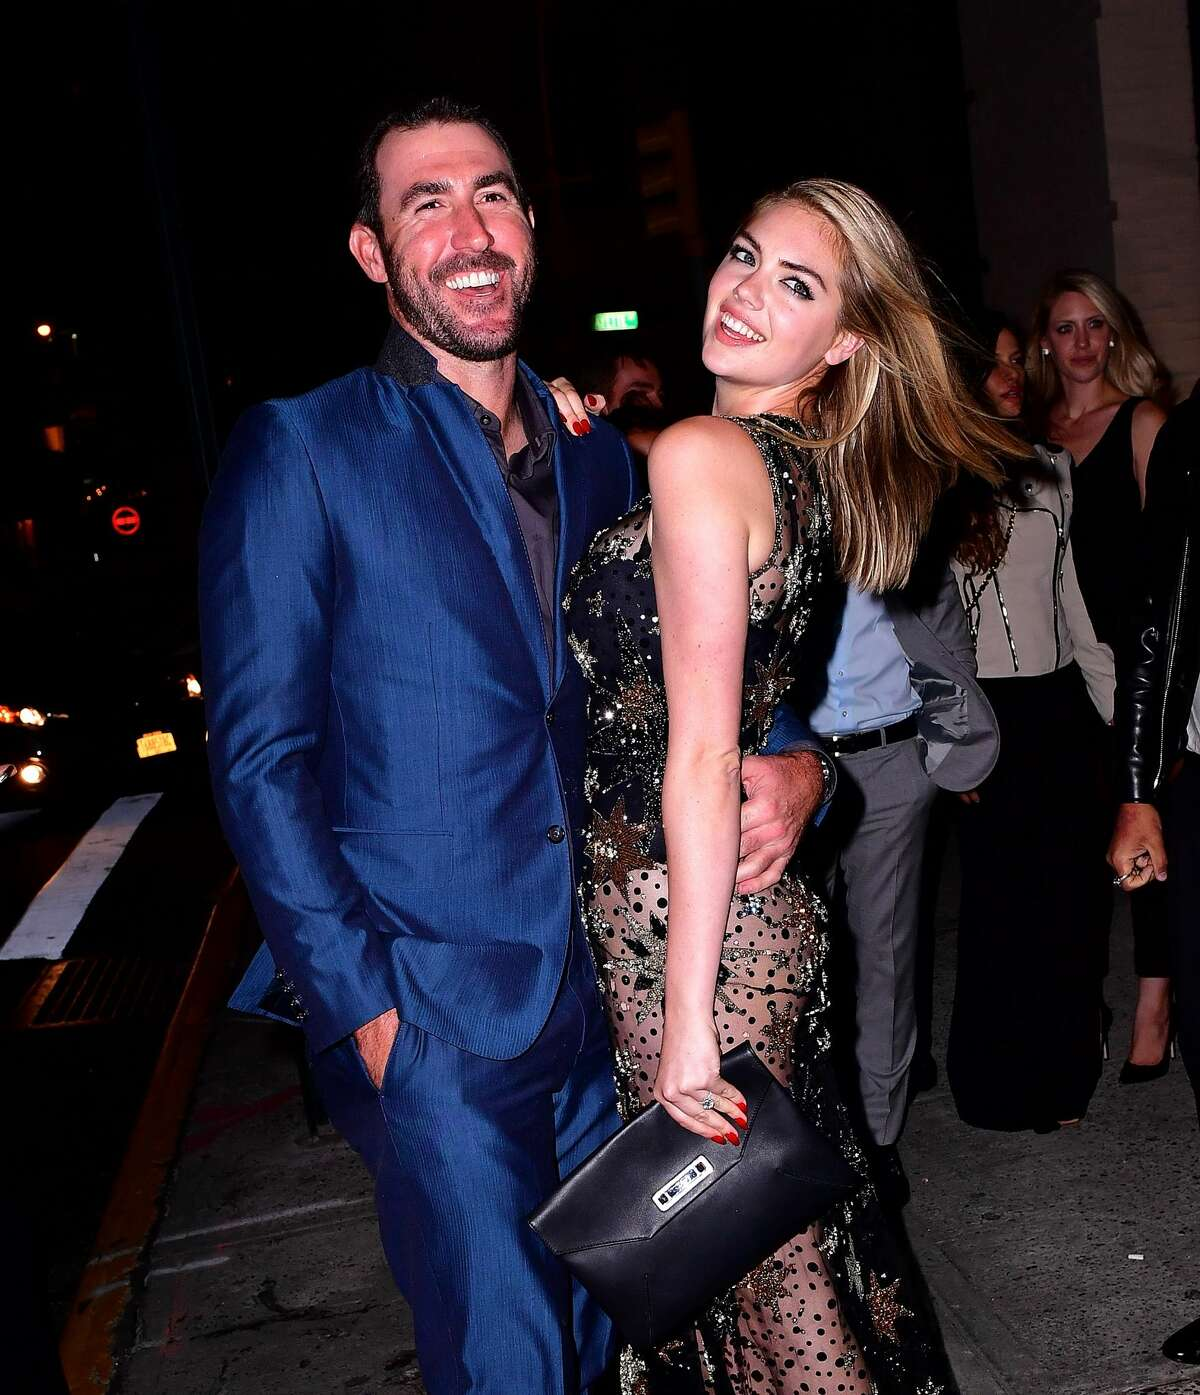 Happy birthday Kate Upton! The model and wife of Houston Astros pitcher Justin Verlander turns 27 on Monday.  NEW YORK, NY - JUNE 08: Justin Verlander and Kate Upton celebrate her birthday at The Blond at 11 Howard Hotel on June 8, 2016 in New York City.